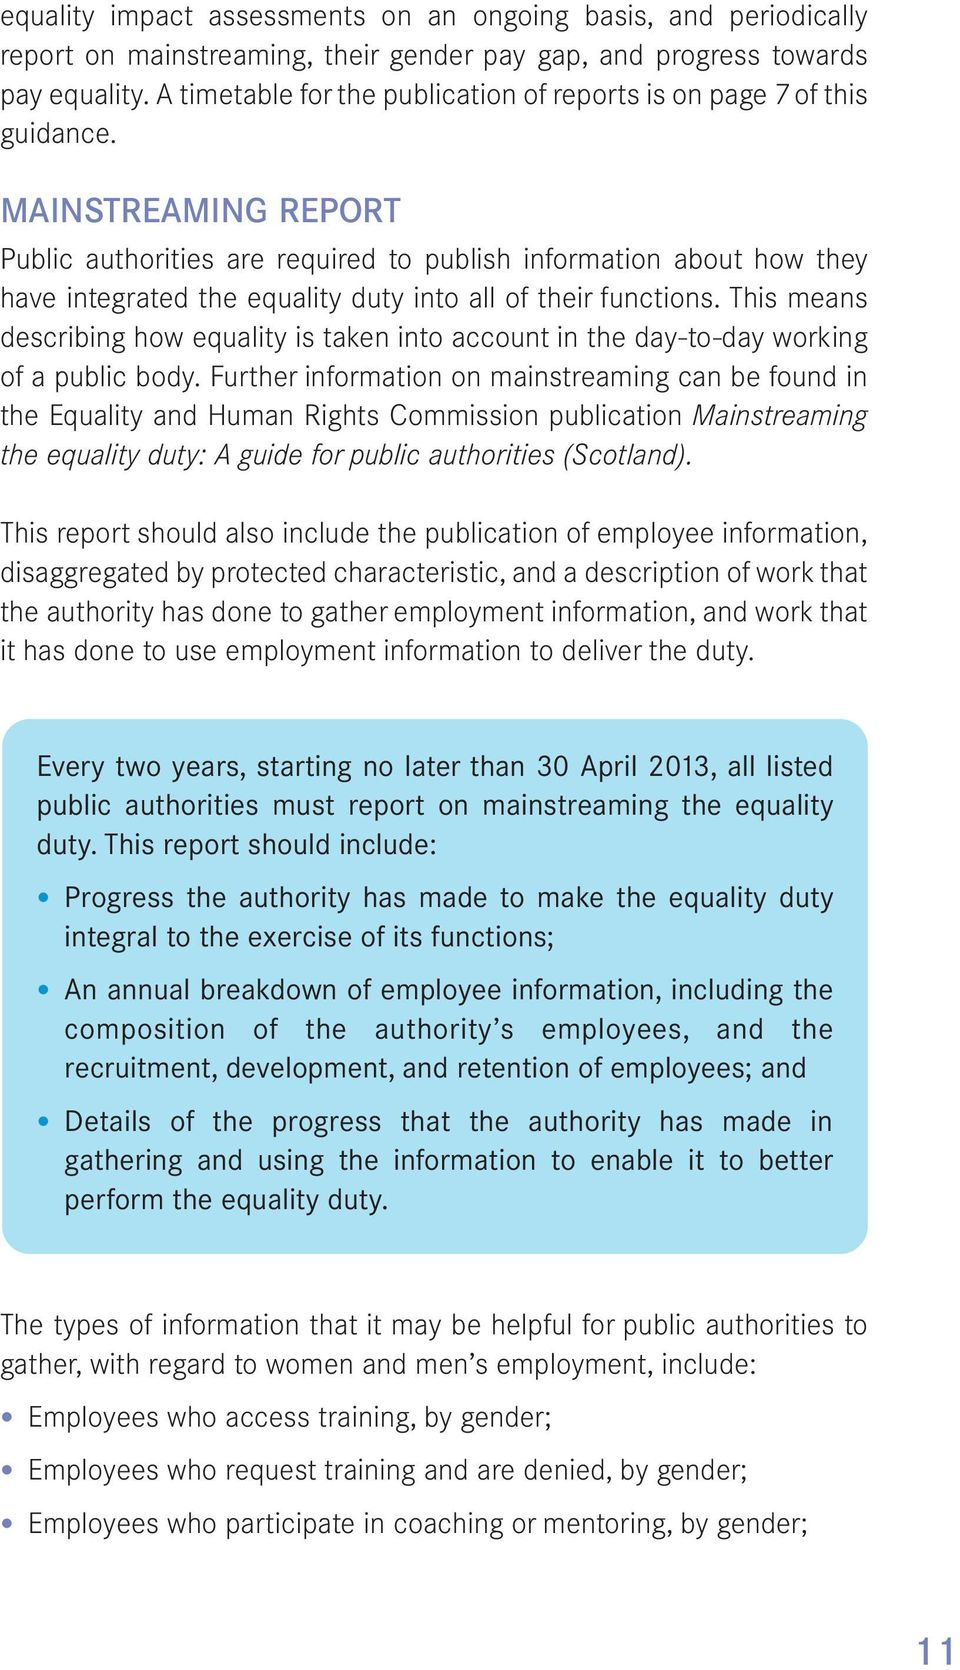 MAINSTREAMING REPORT Public authorities are required to publish information about how they have integrated the equality duty into all of their functions.